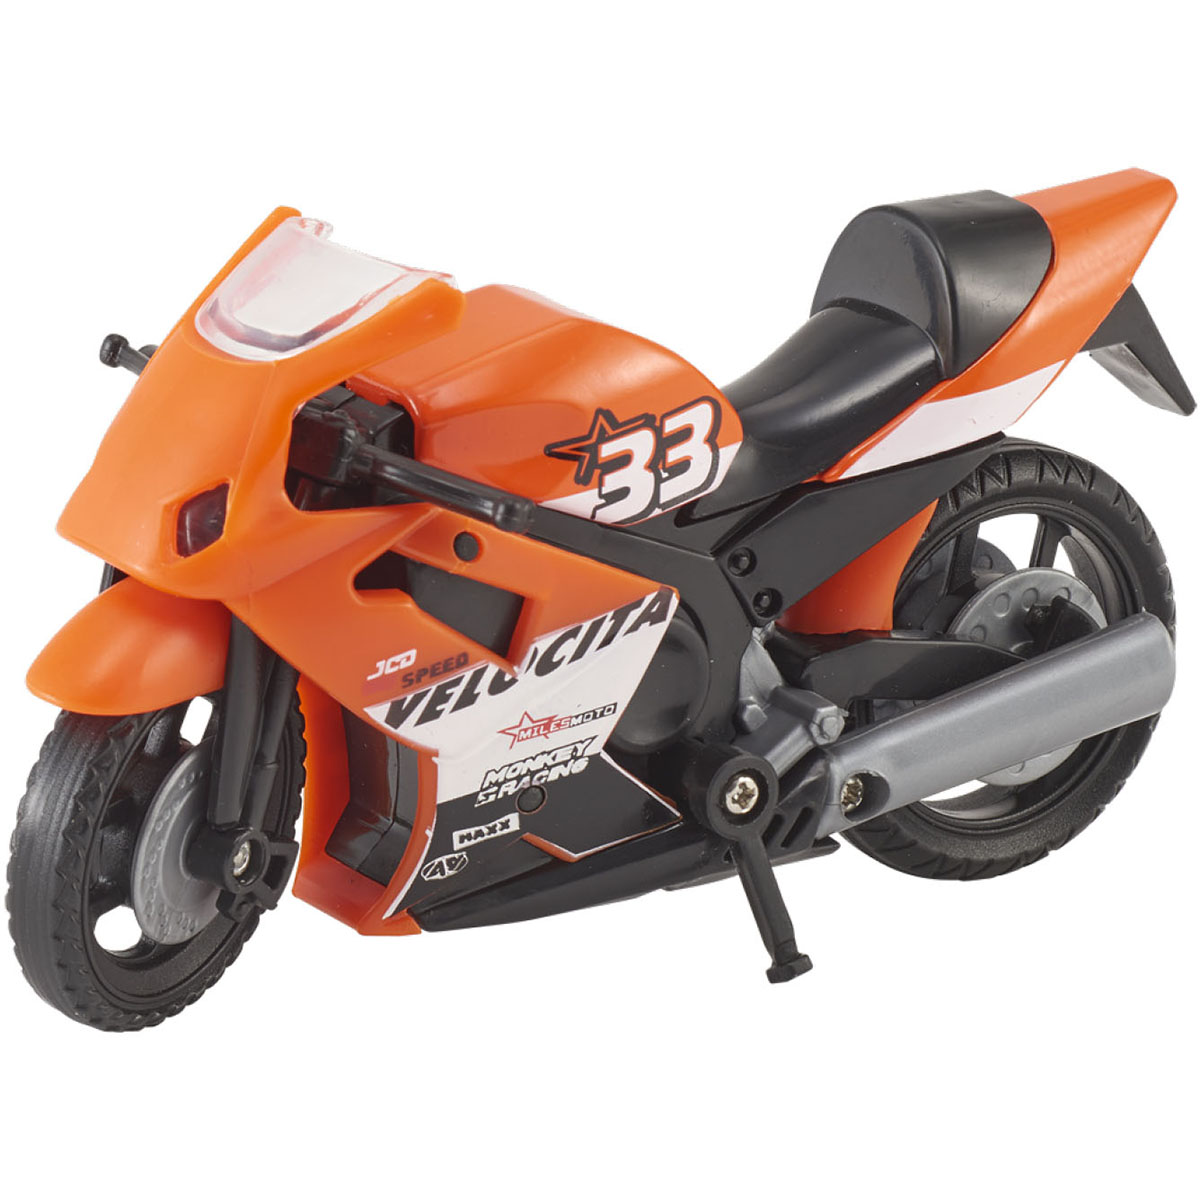 Motocicleta Teamsterz Speed Bike, Rosu